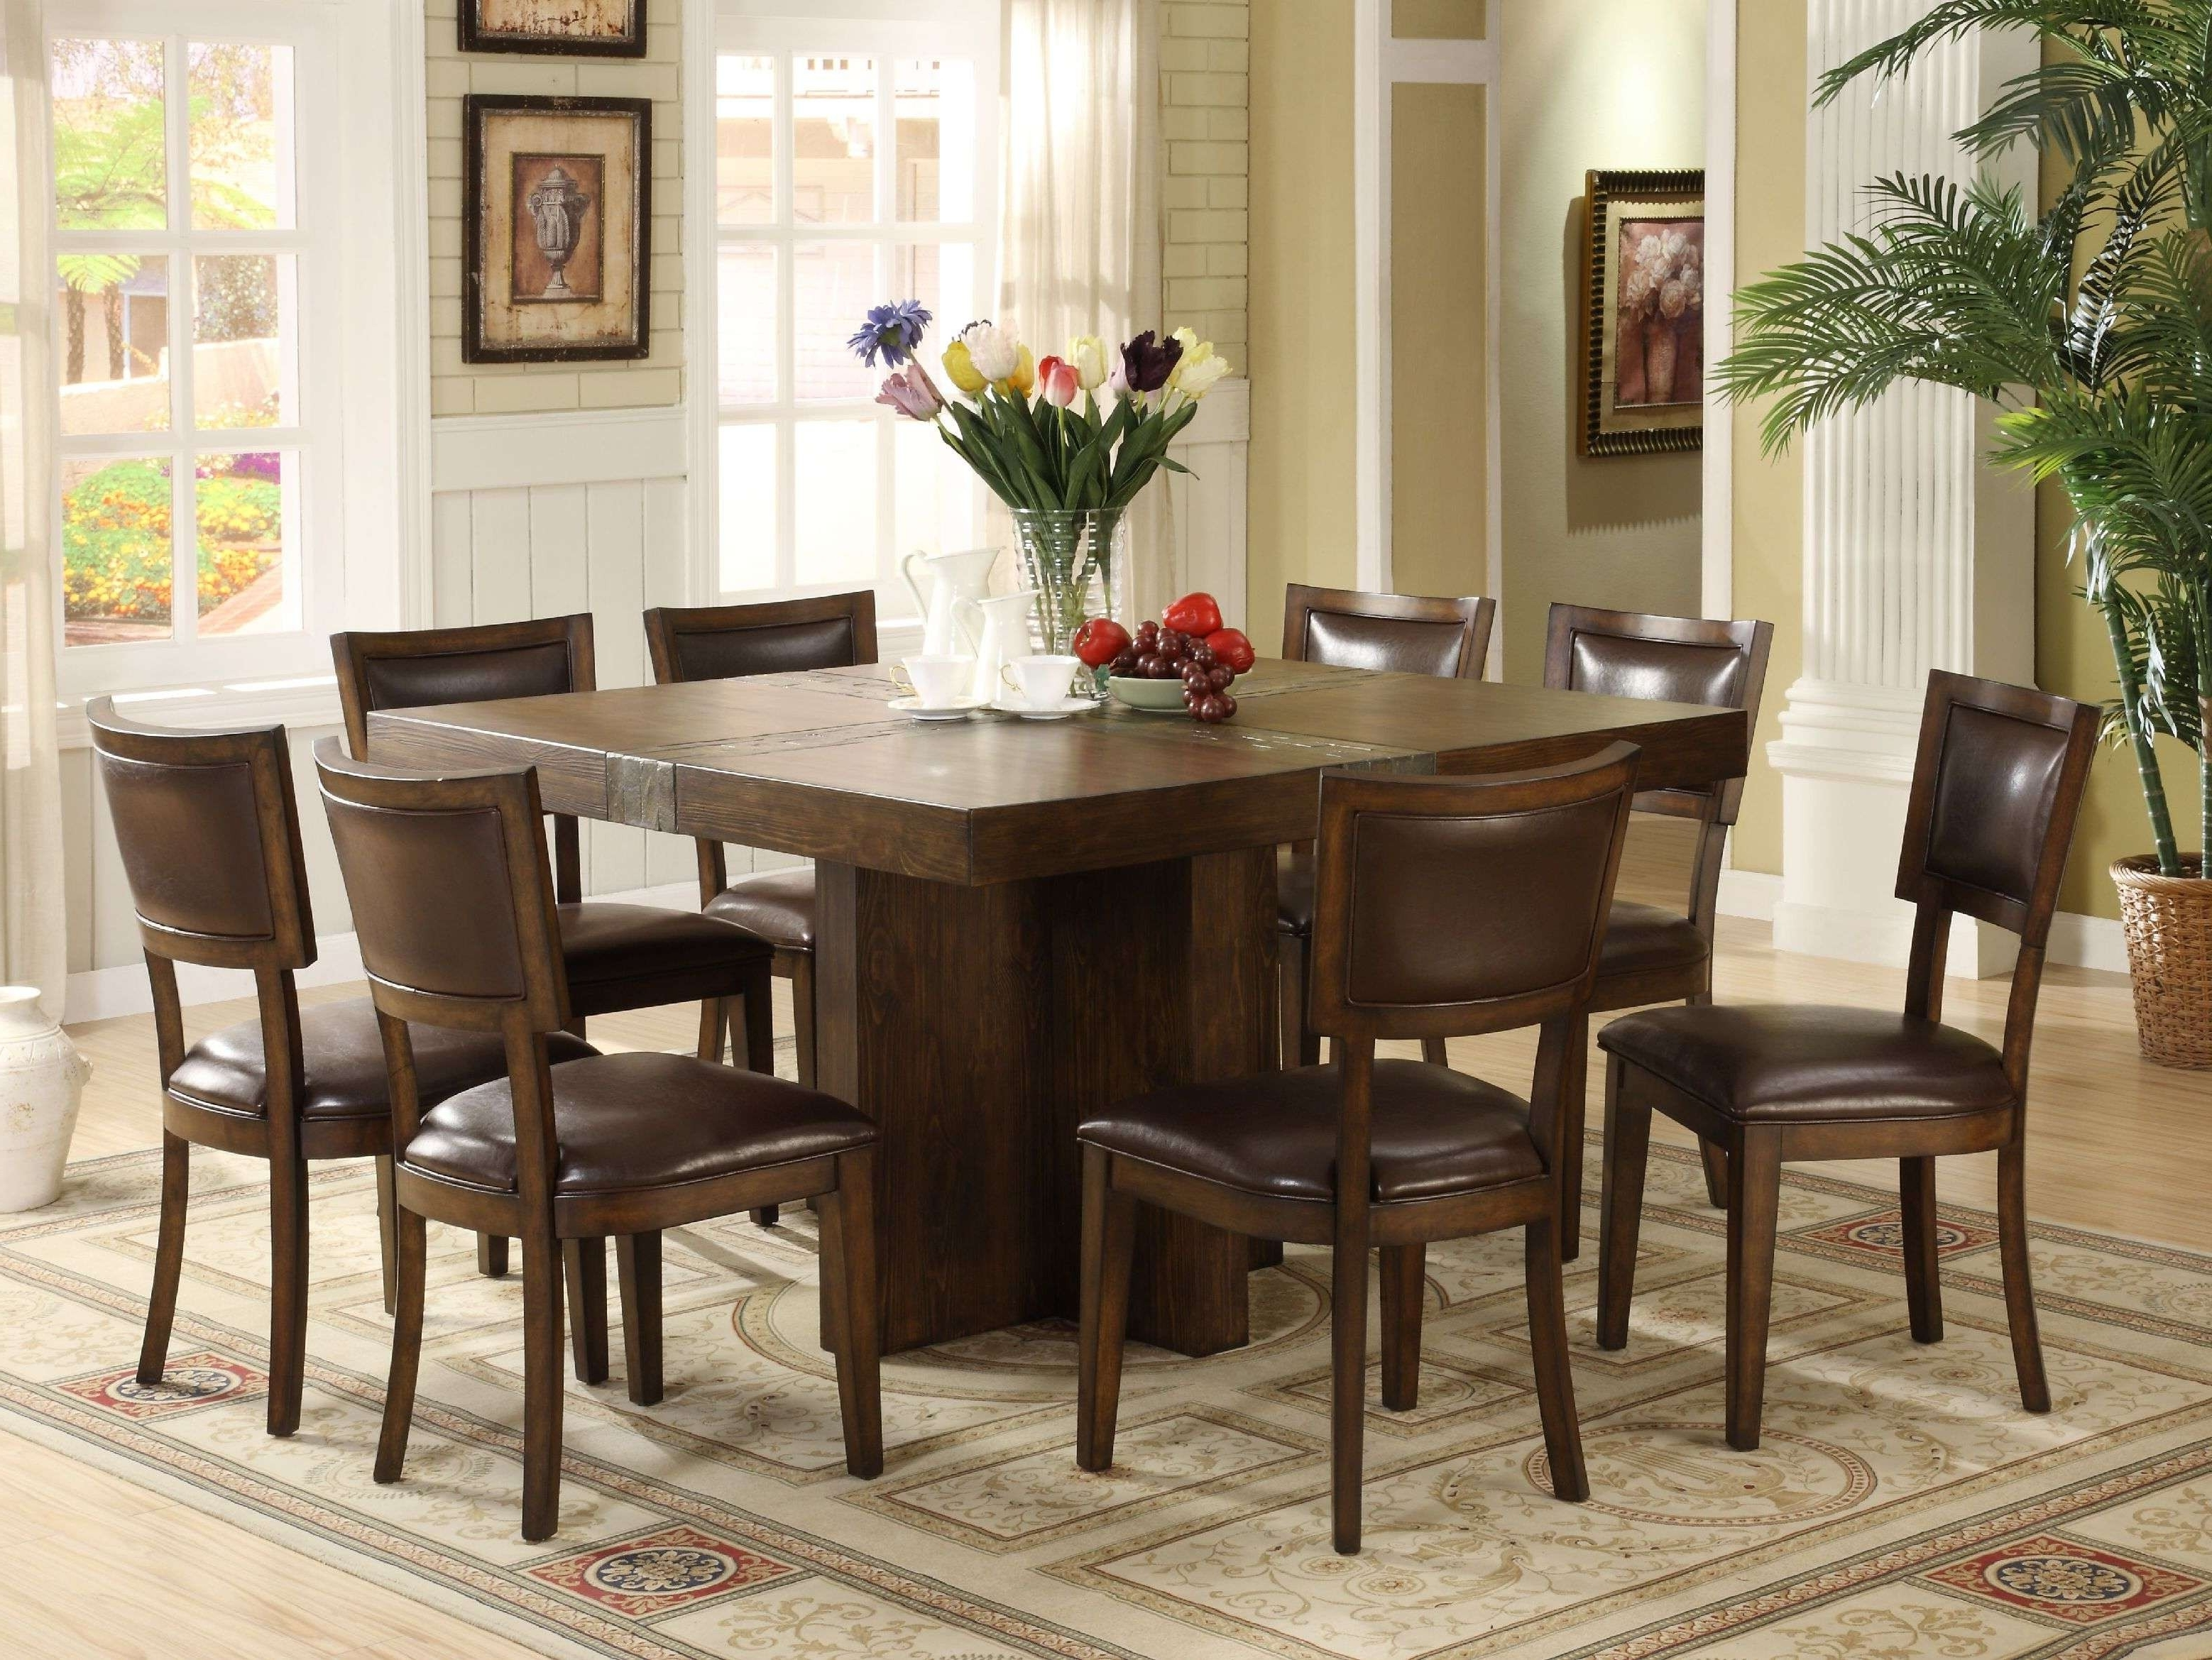 Most Popular Solid Oak Dining Room Table And 8 Chairs Unique Best 8 Seater Dining For 8 Chairs Dining Sets (Gallery 15 of 25)